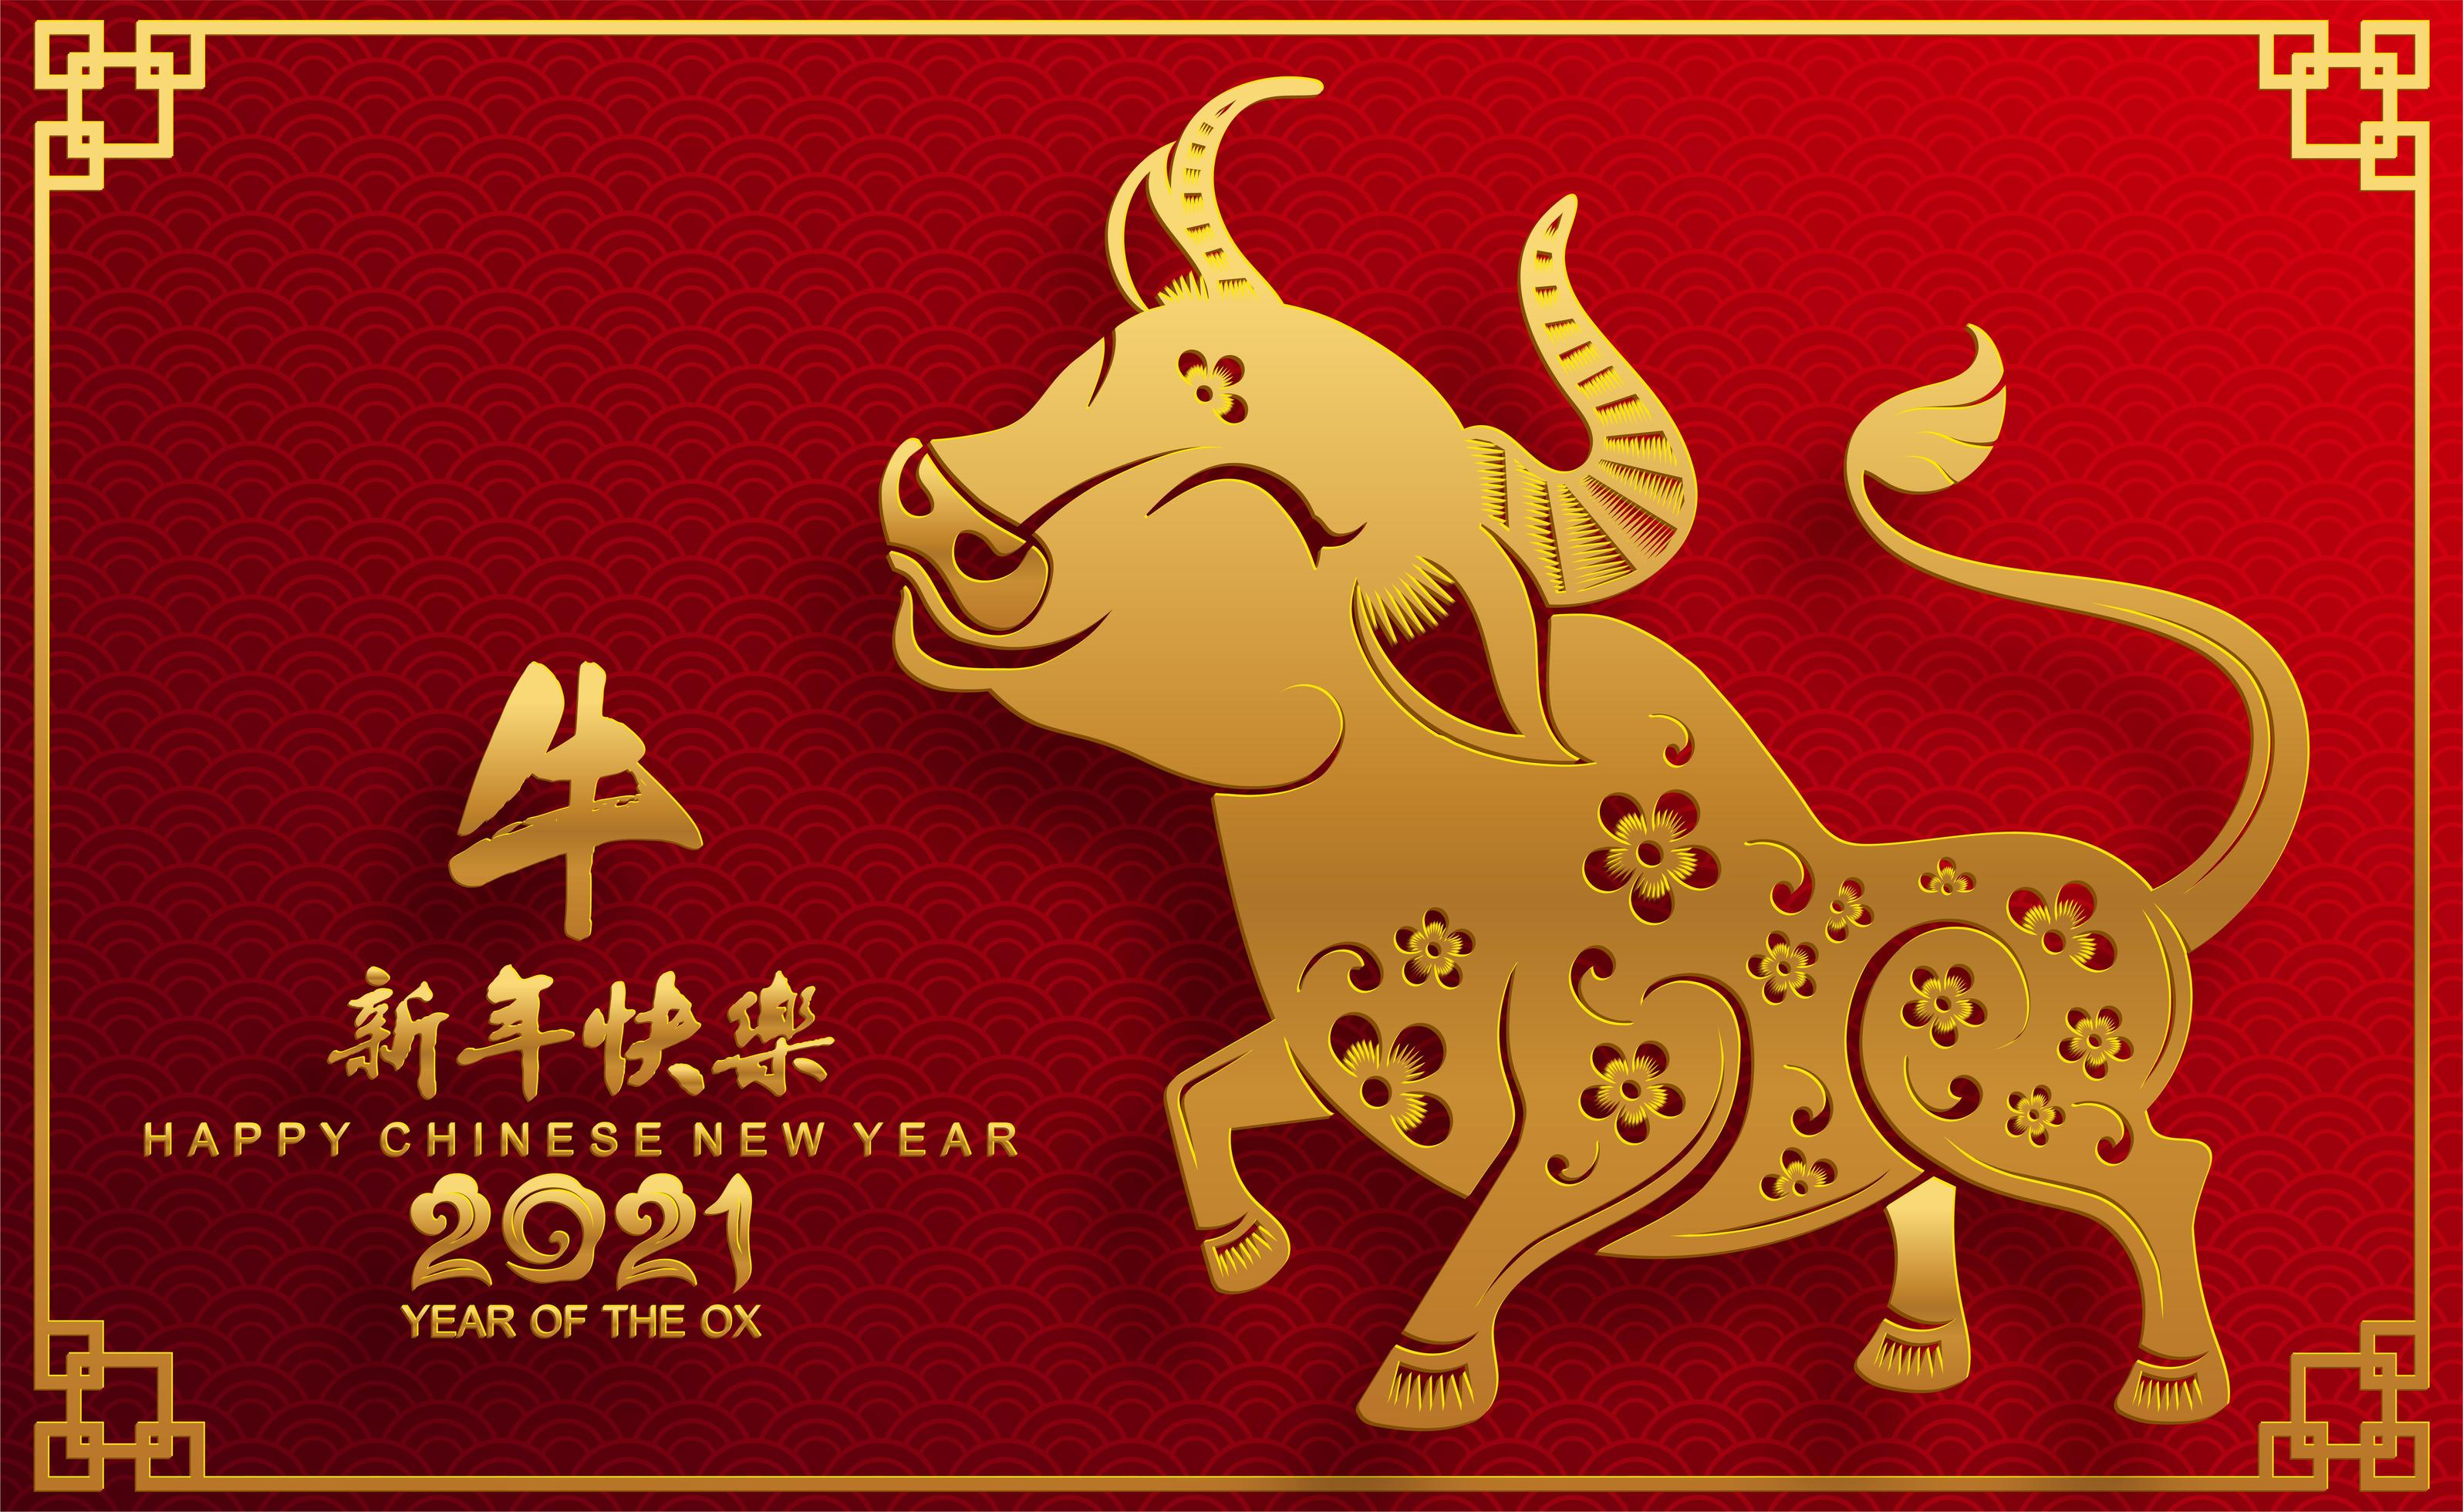 chinese-new-year-2021-design-with-golden